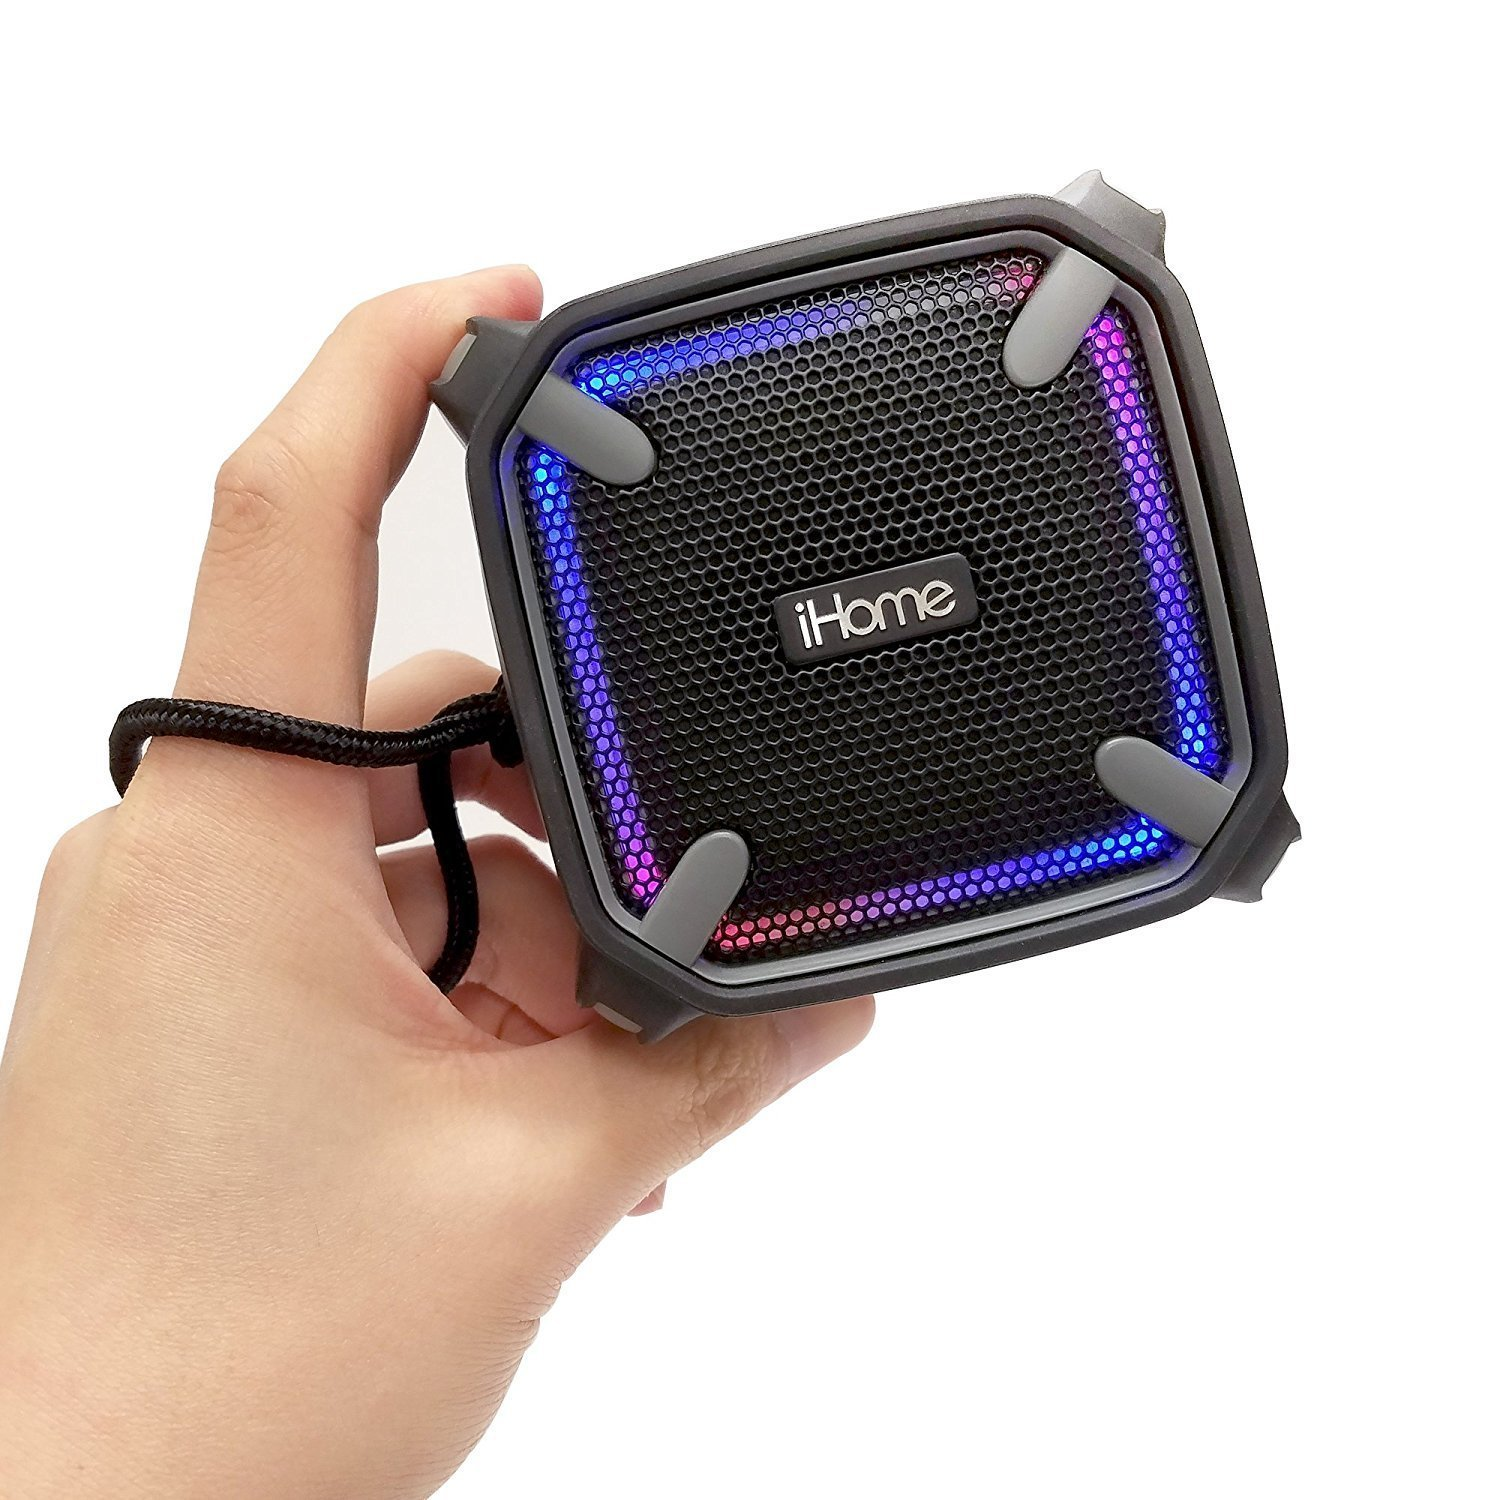 iHome Weather Tough Portable Rechargeable Bluetooth Speaker.